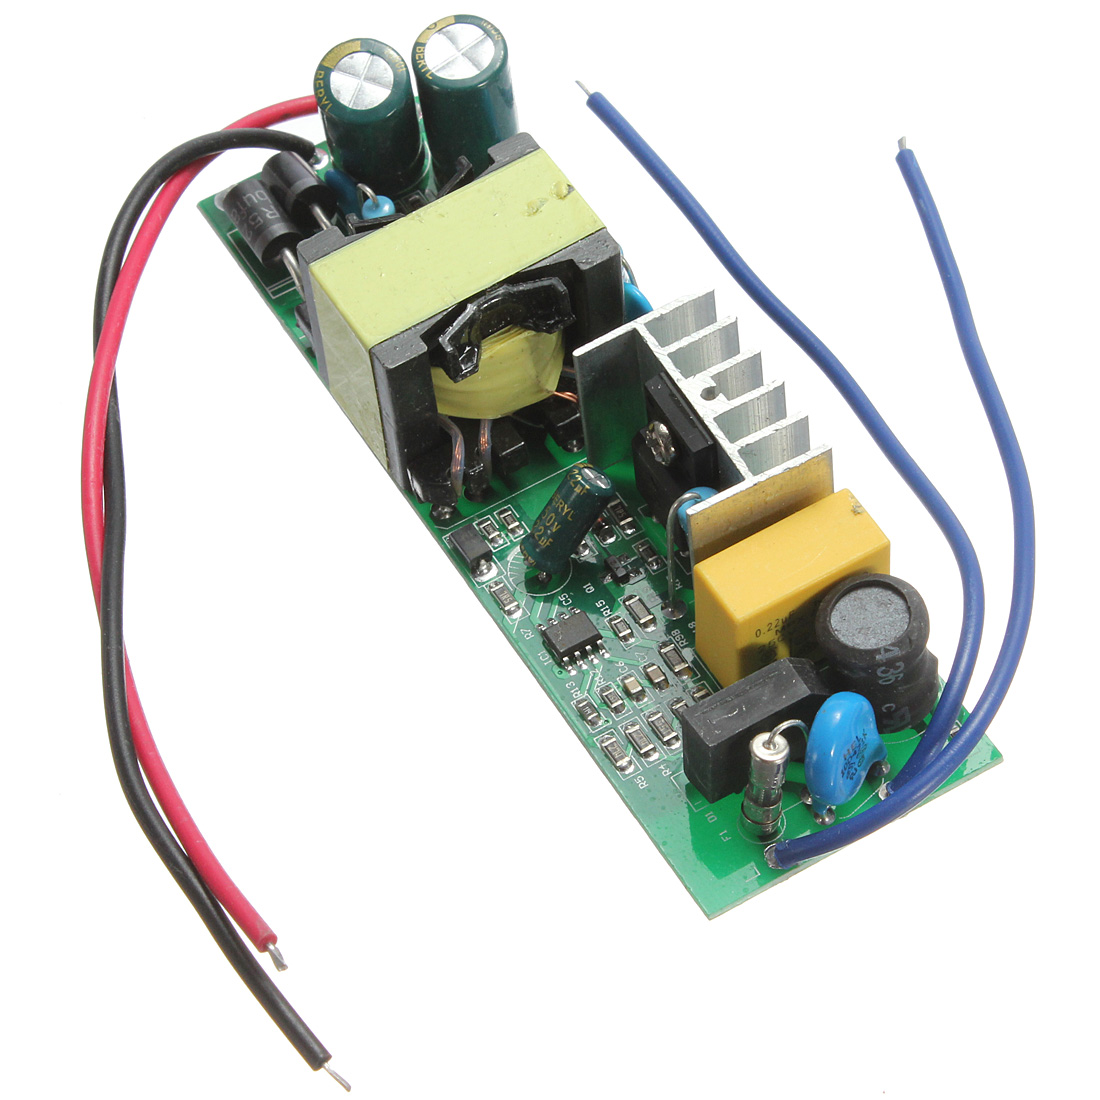 3w led driver circuit diagram 96 chevy s10 headlight wiring 10w 20w 30w 50w chip 43 power supply for light